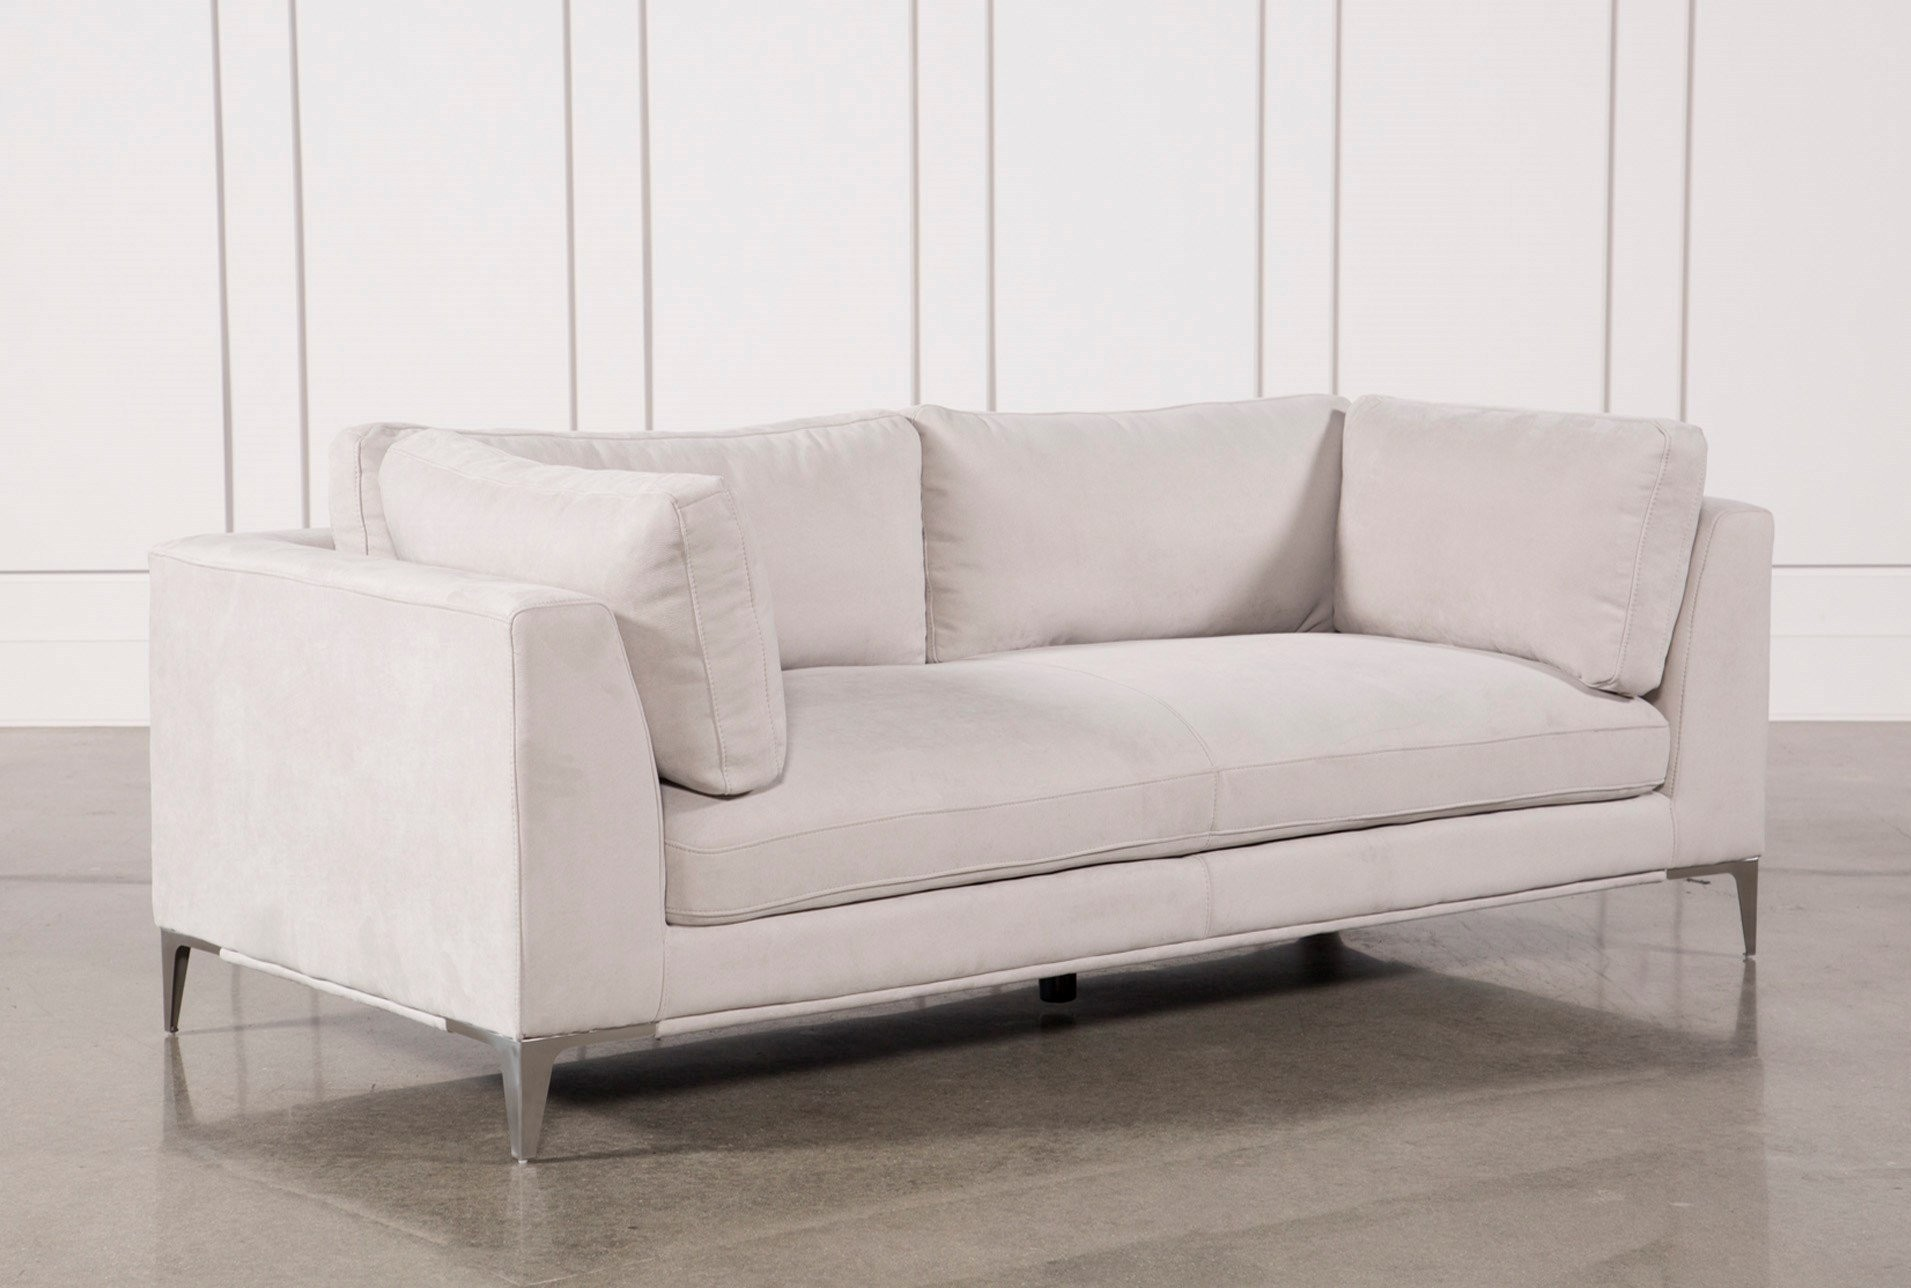 Light Grey sofa Fantastic Apollo Light Grey sofa W2 Pillows Architecture